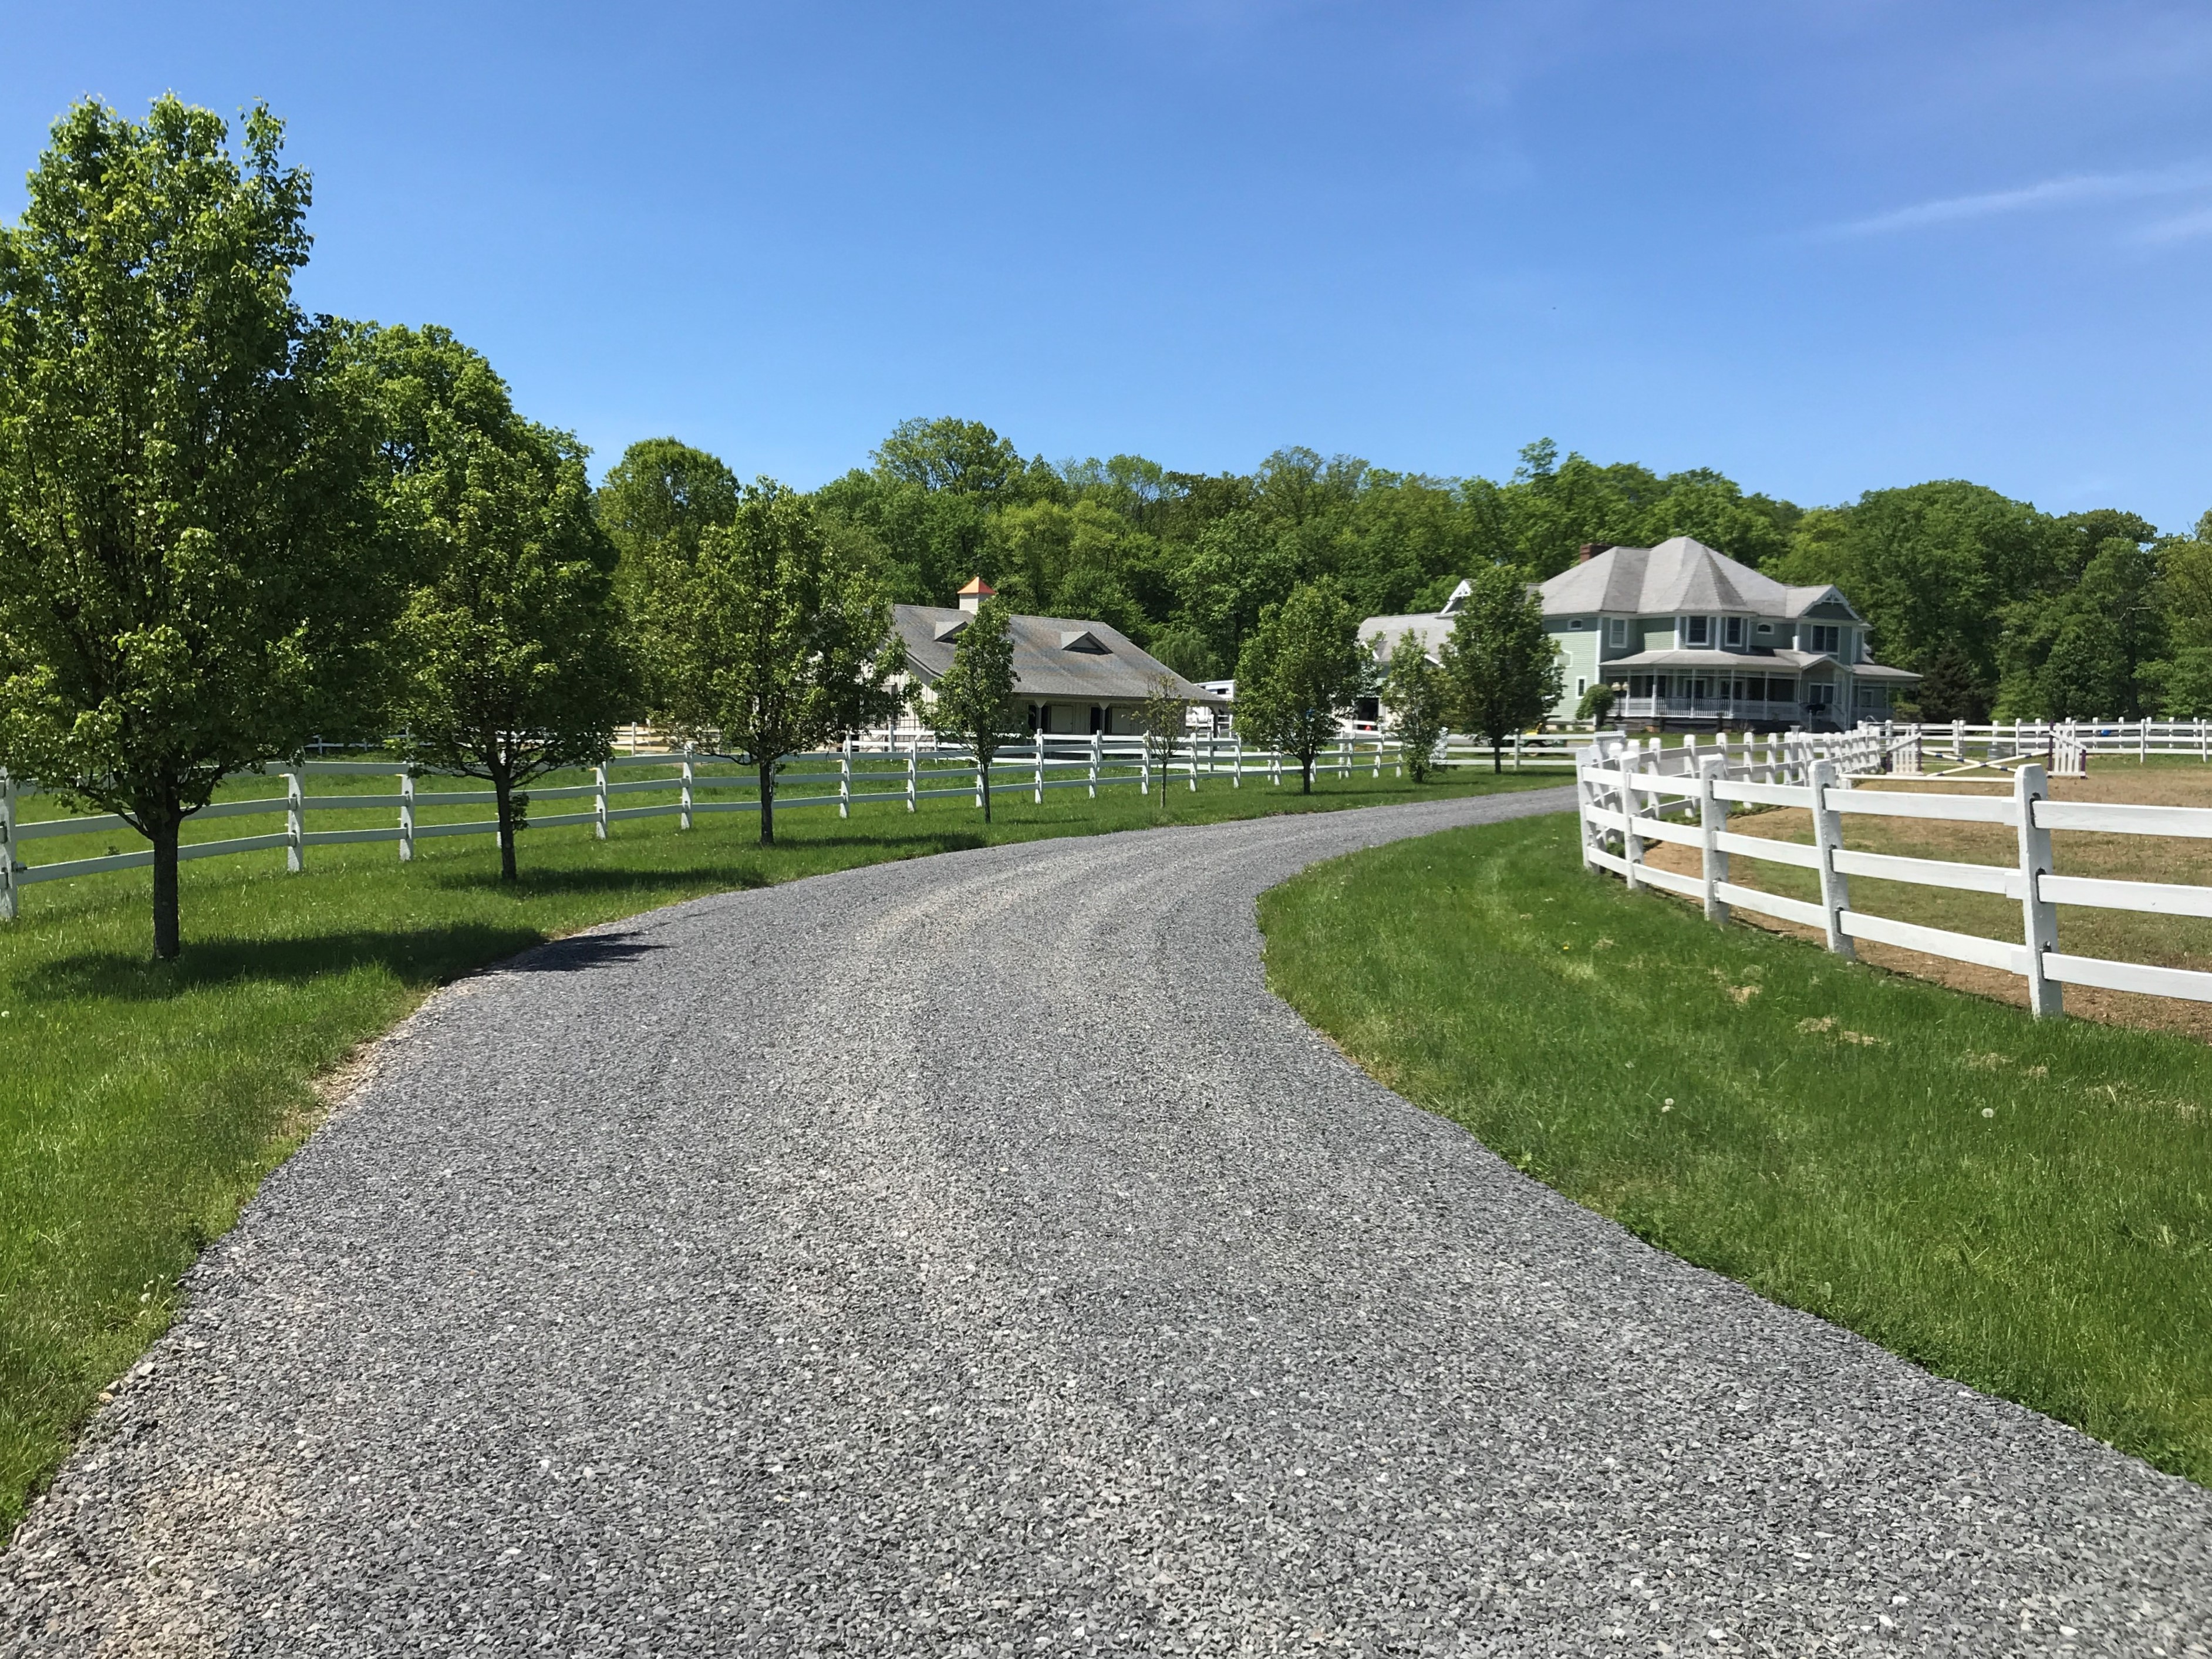 25b 98 Fairmount Road West Tewksbury Township — driveway from road